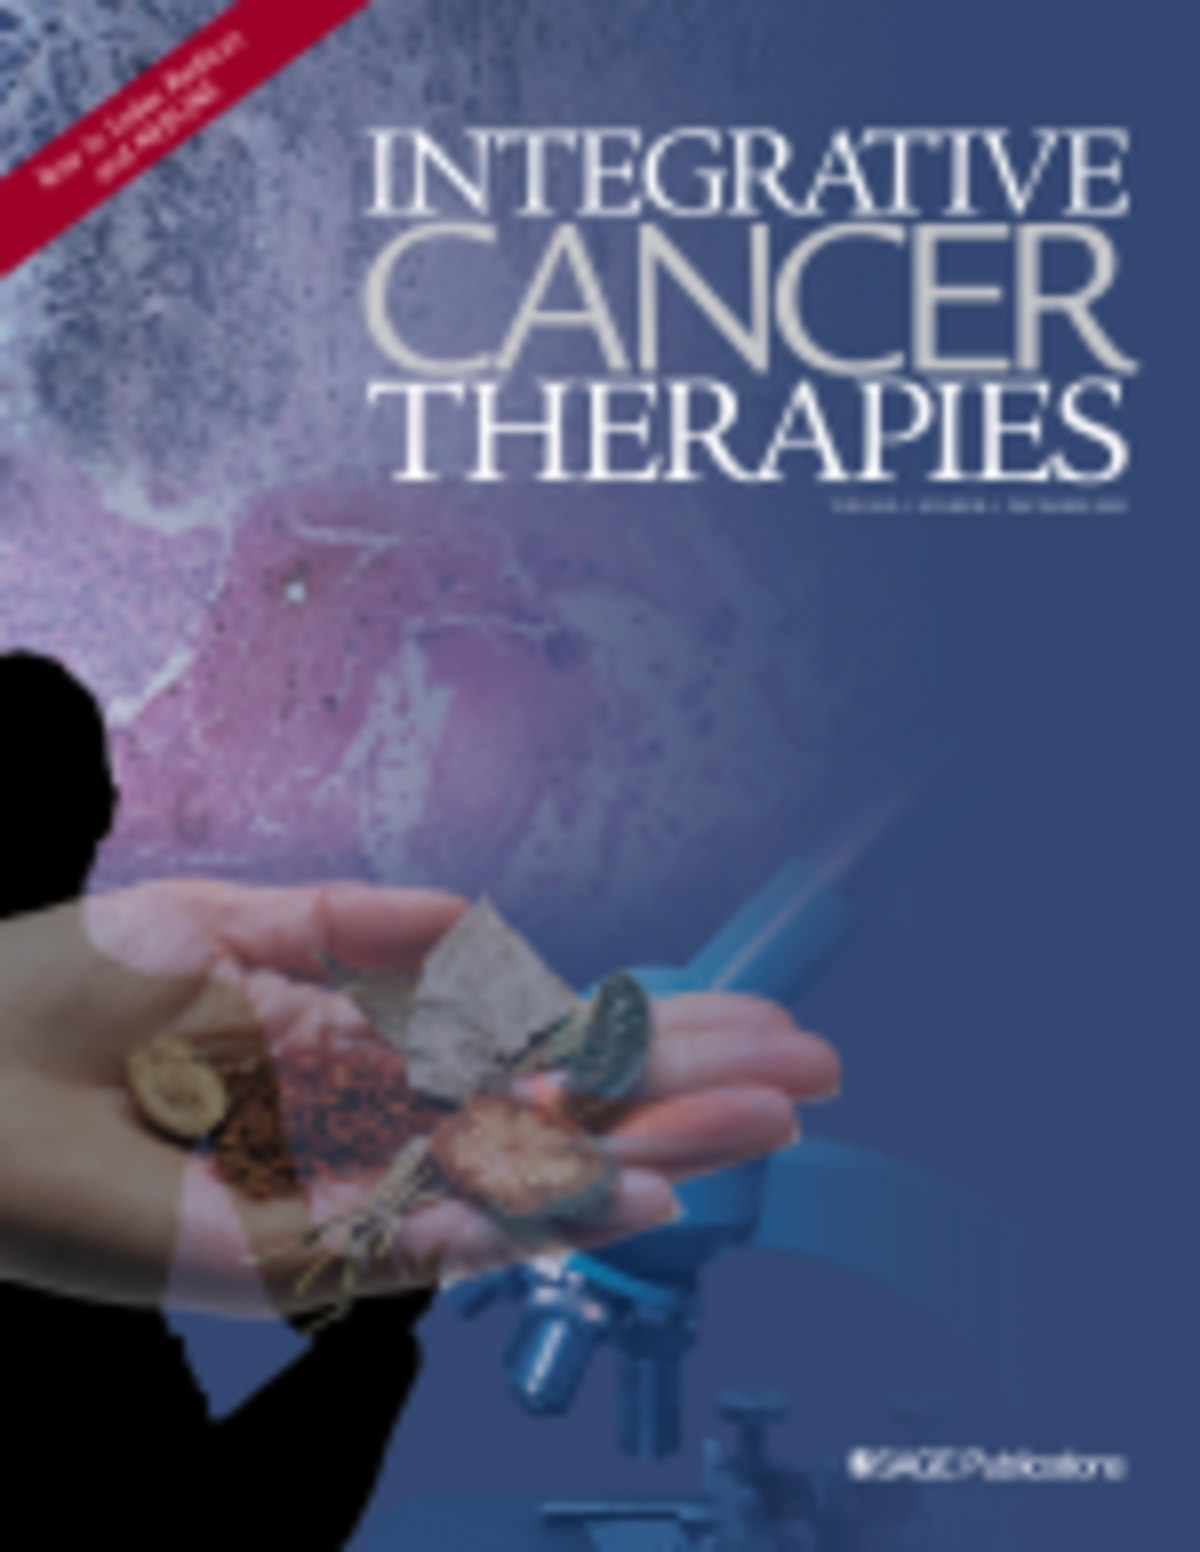 integrative therapy Our support programs are designed to help patients, their families and caregivers cope with the challenges of a cancer diagnosis we offer a wide range of integrative therapies, workshops and support groups.